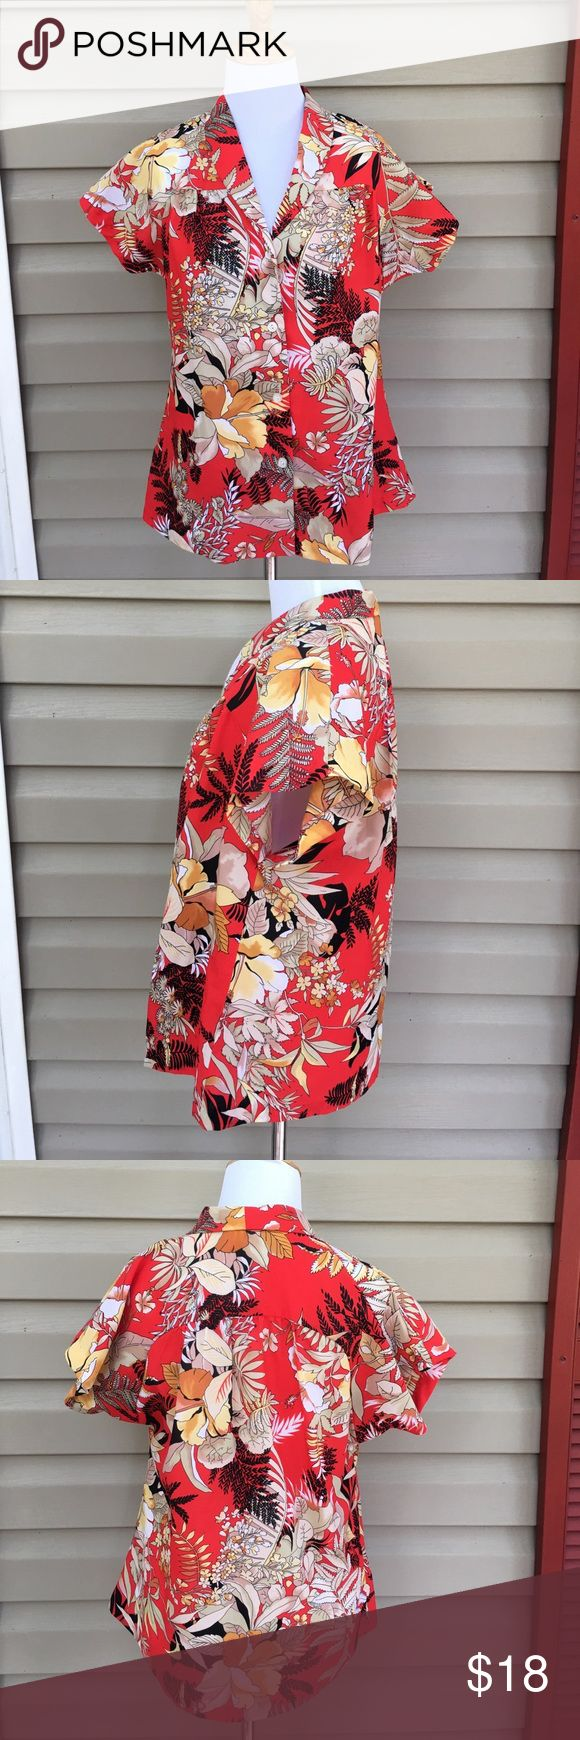 """Taps Designs Hawaii women's red/ gold shirt Very nice flowered Hawaiian shirt, red,gold, and black print, button front,  polyester. No snags stains or holes.20""""W x 25""""L Tapa Designs Hawaii Tops Blouses"""